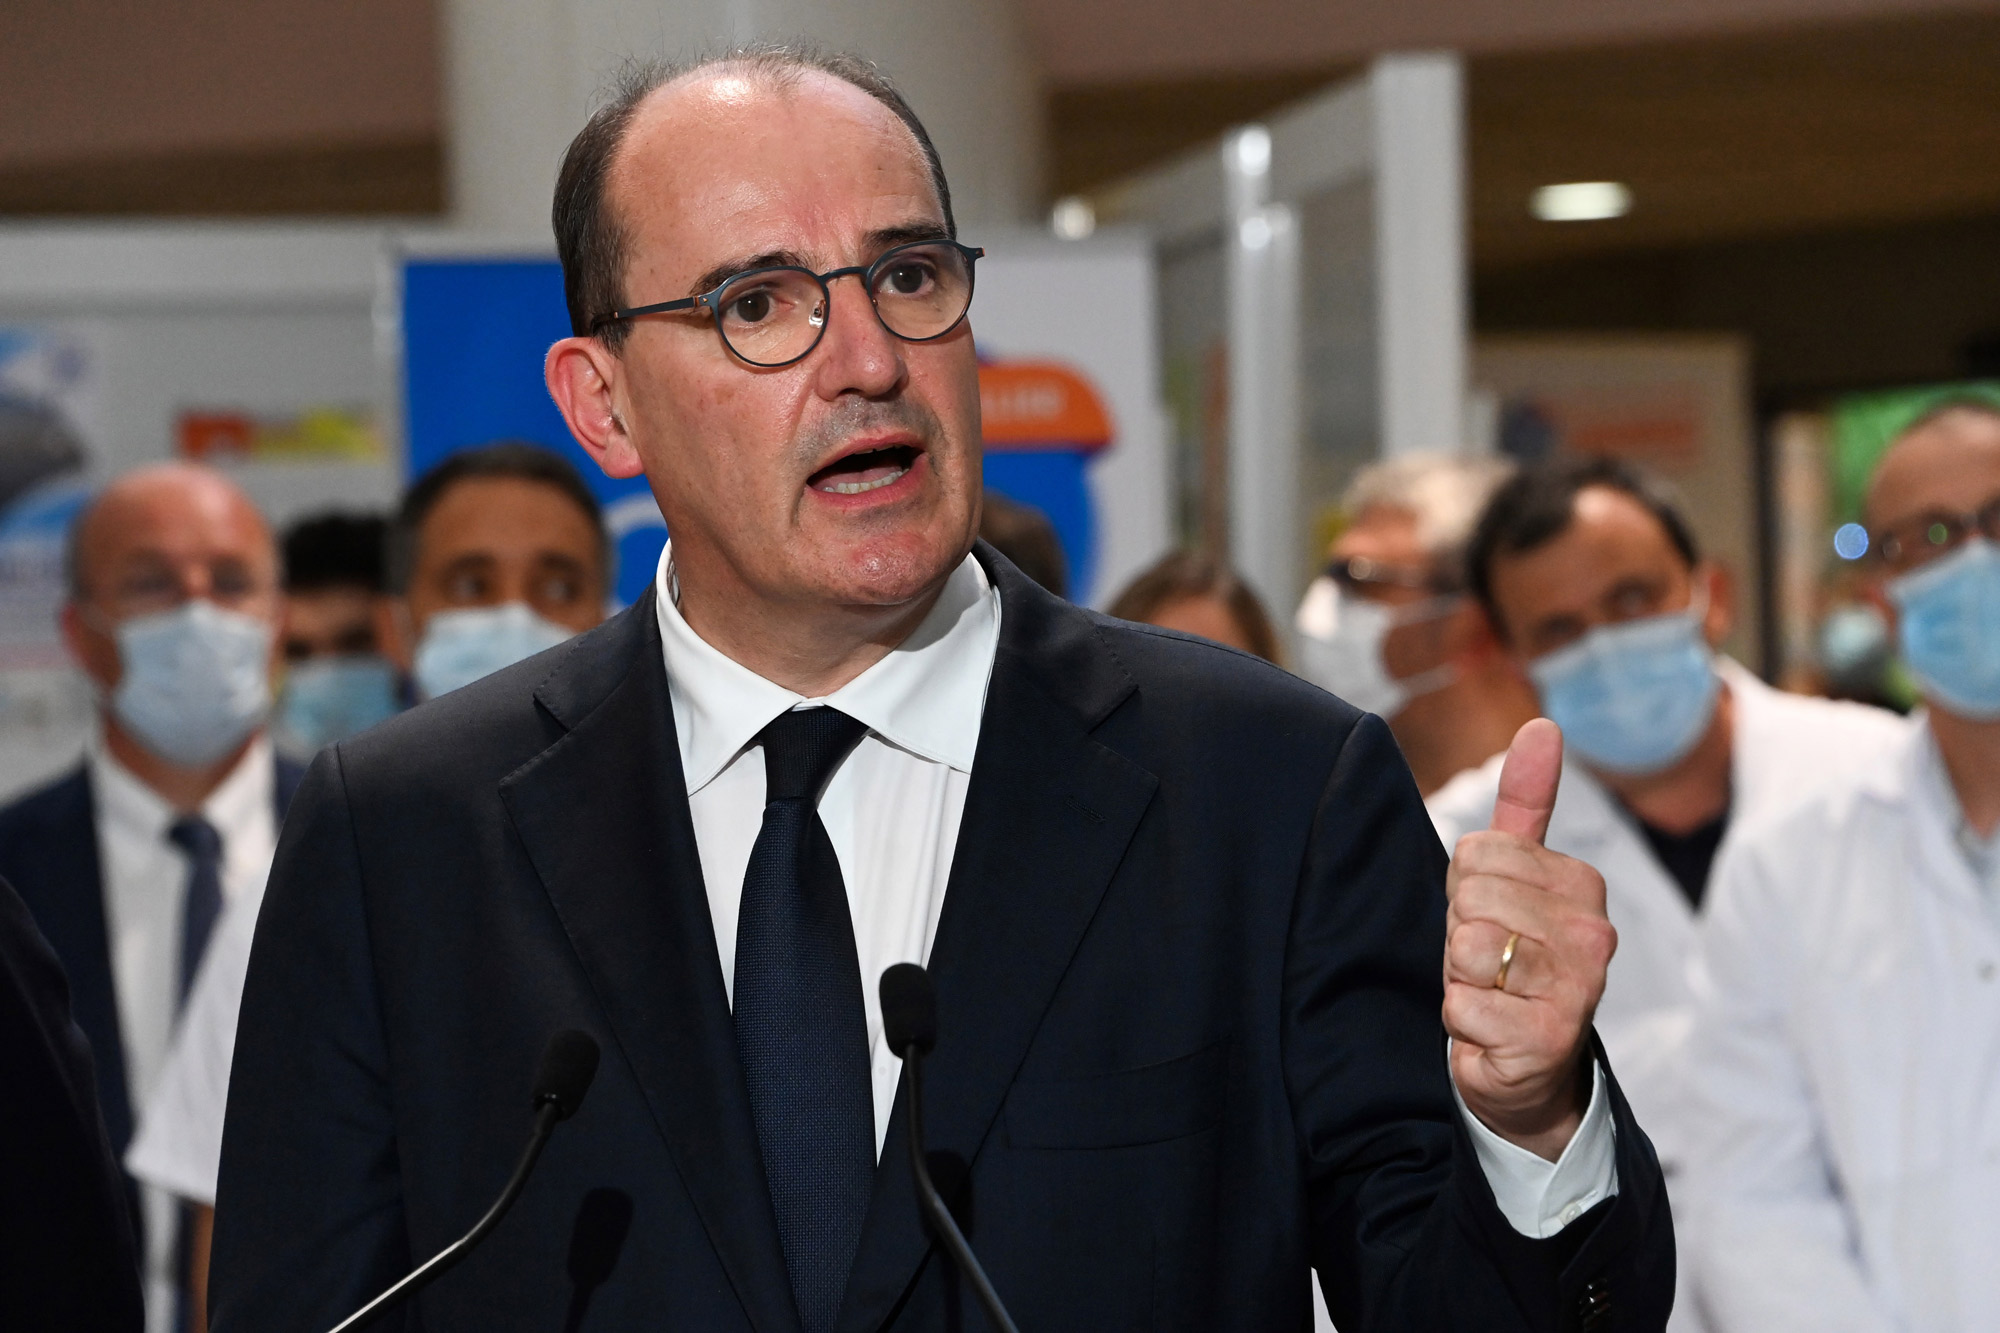 French Prime Minister Jean Castex delivers a speech during a visit at the CHU hospital in Montpellier, France, on August 11.